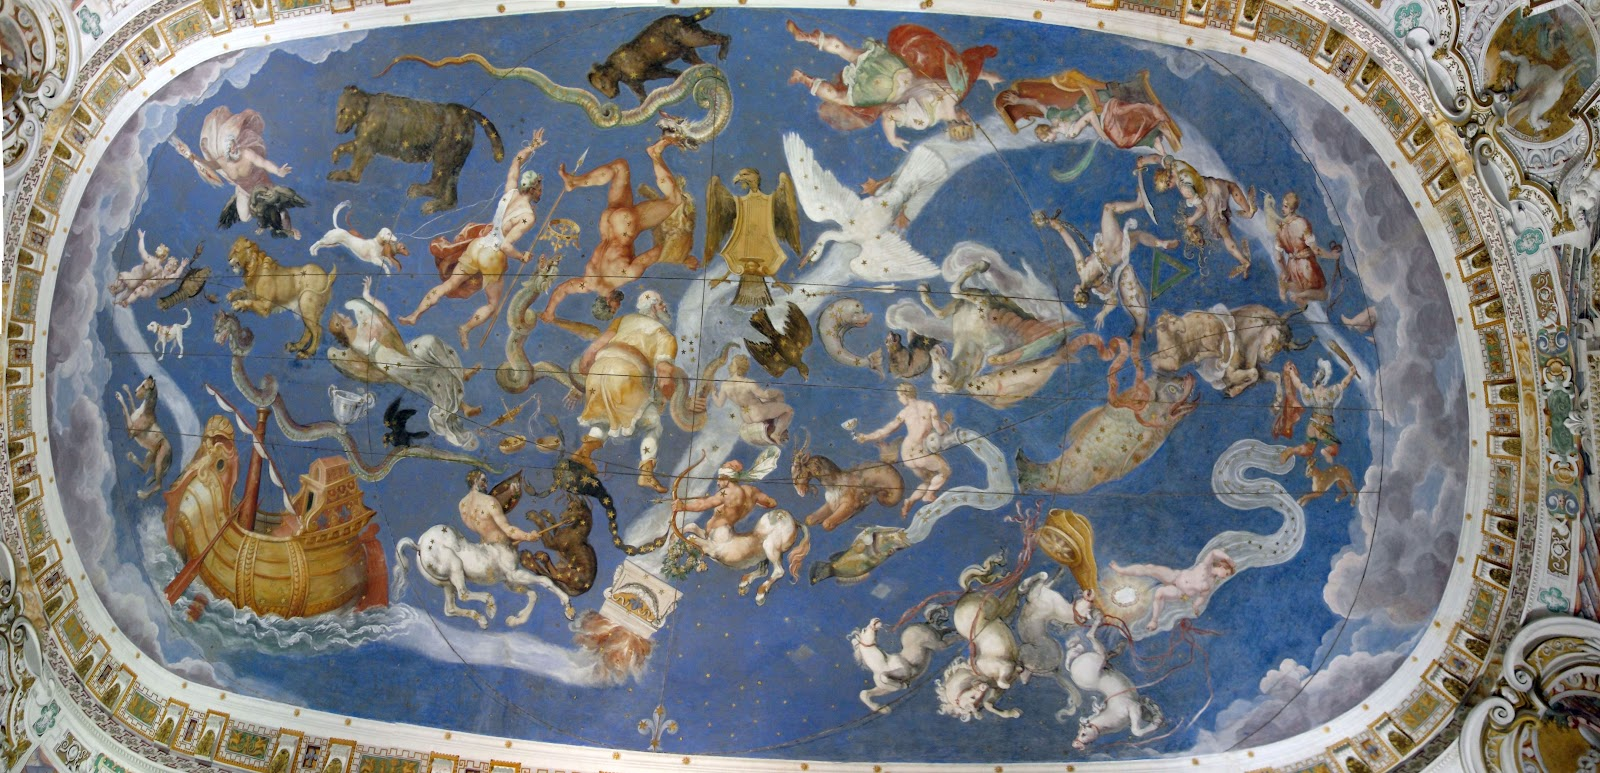 Ciao from italy villas and gardens for Constellation ceiling mural